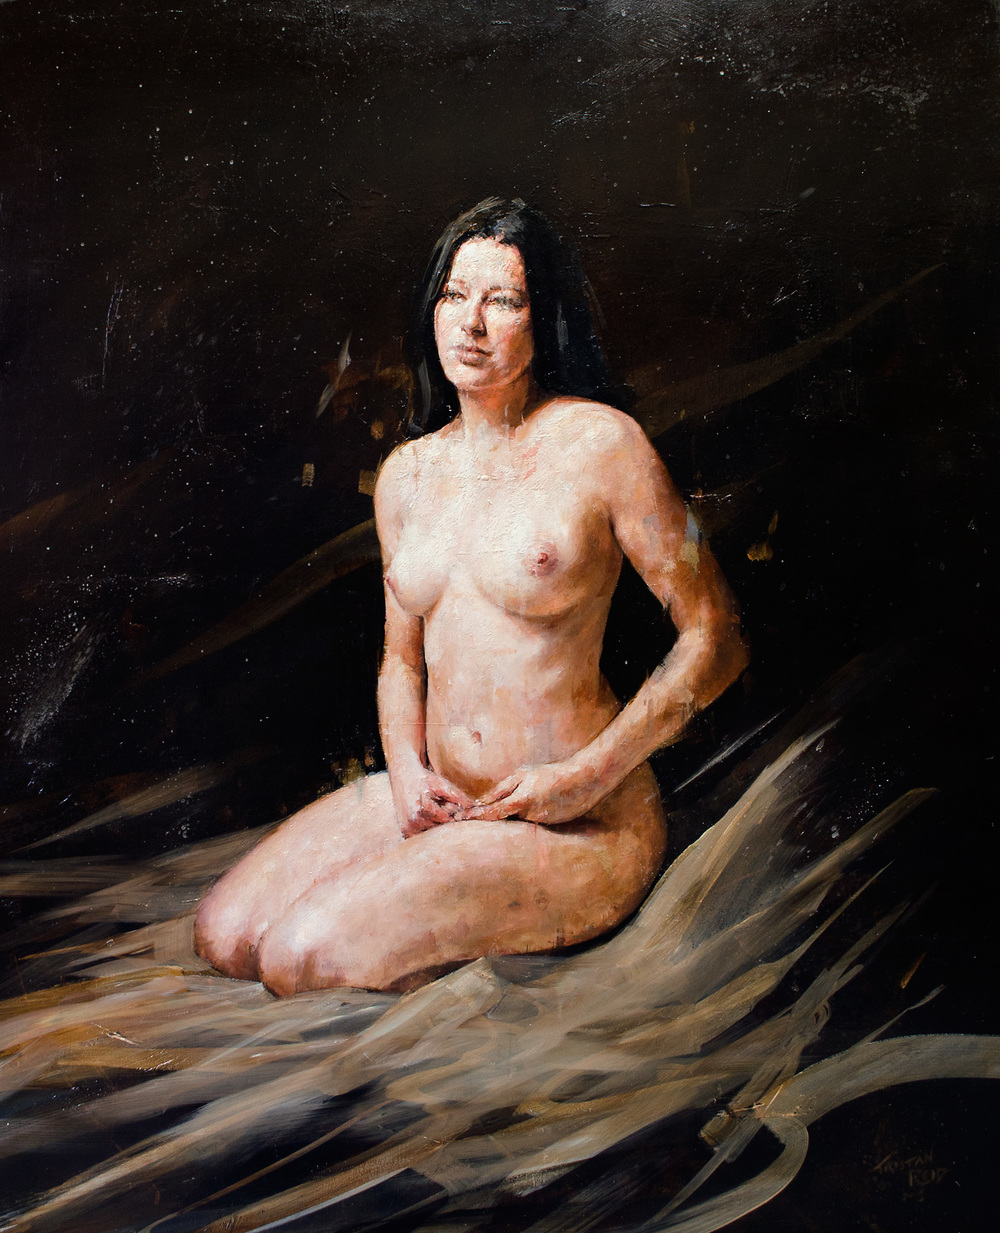 Nude 7, oil on panel, 81.5x68cm